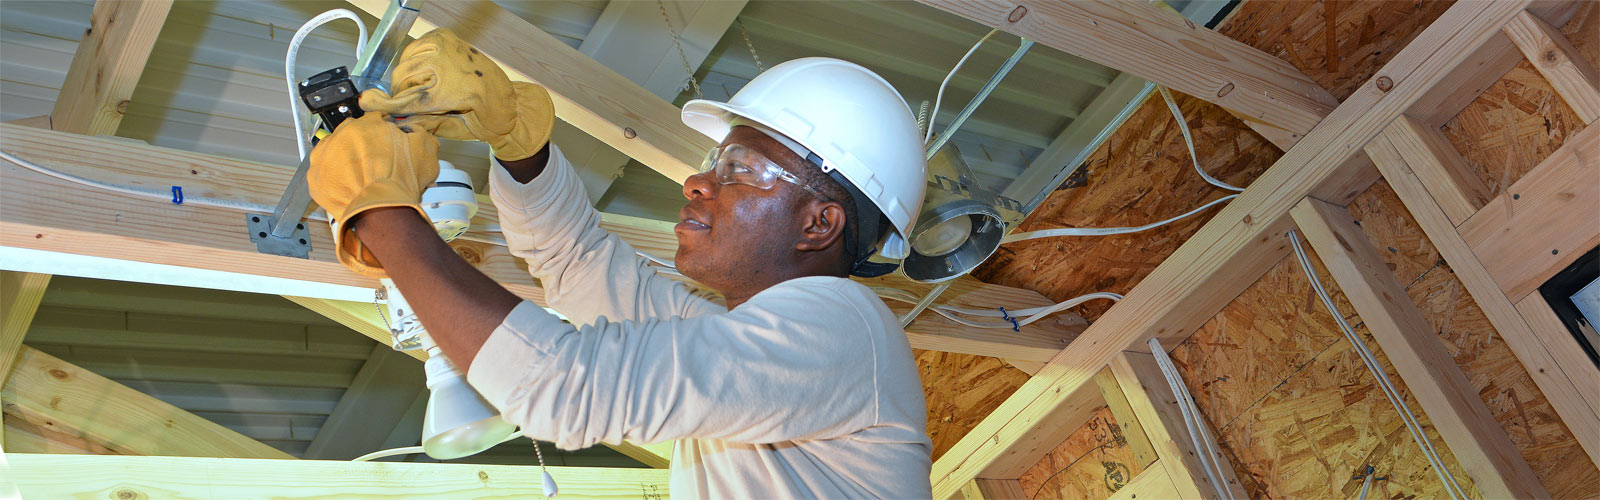 Student wearing hard hat and gloves wiring a ceiling light in electrical training module.